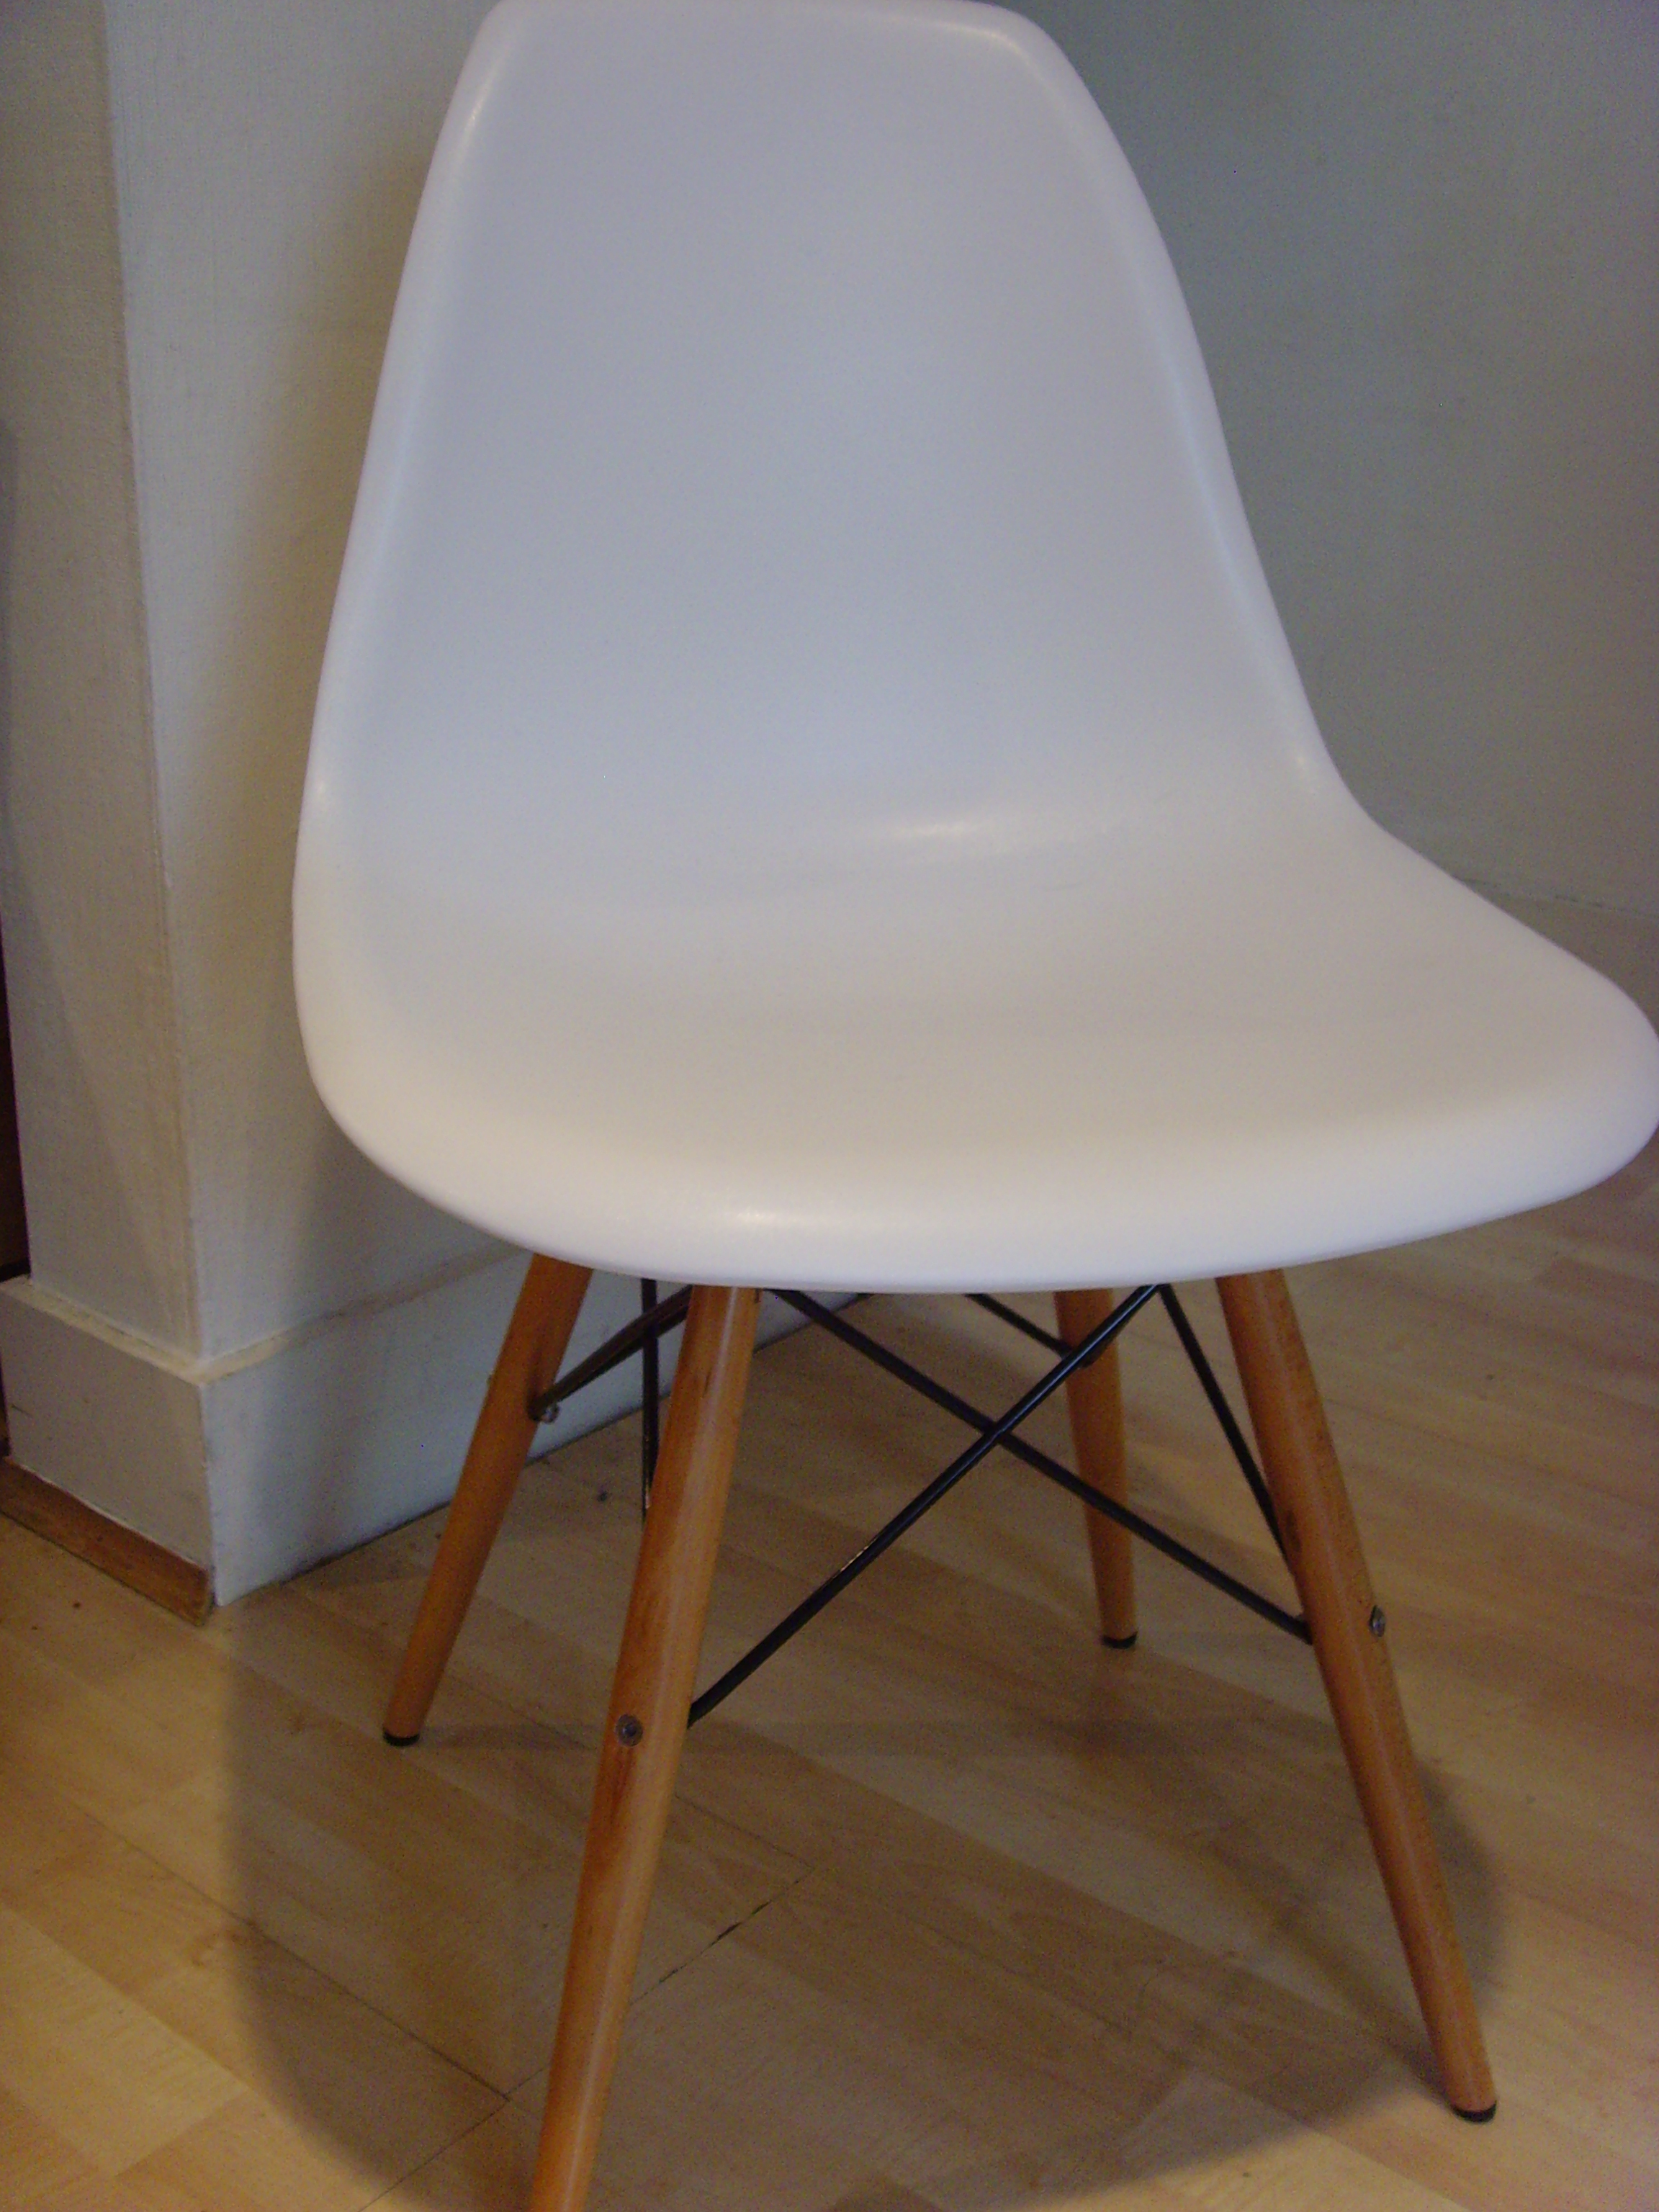 Thrifty finds charles eames dsw chairs origin interiors for Dsw charles eames